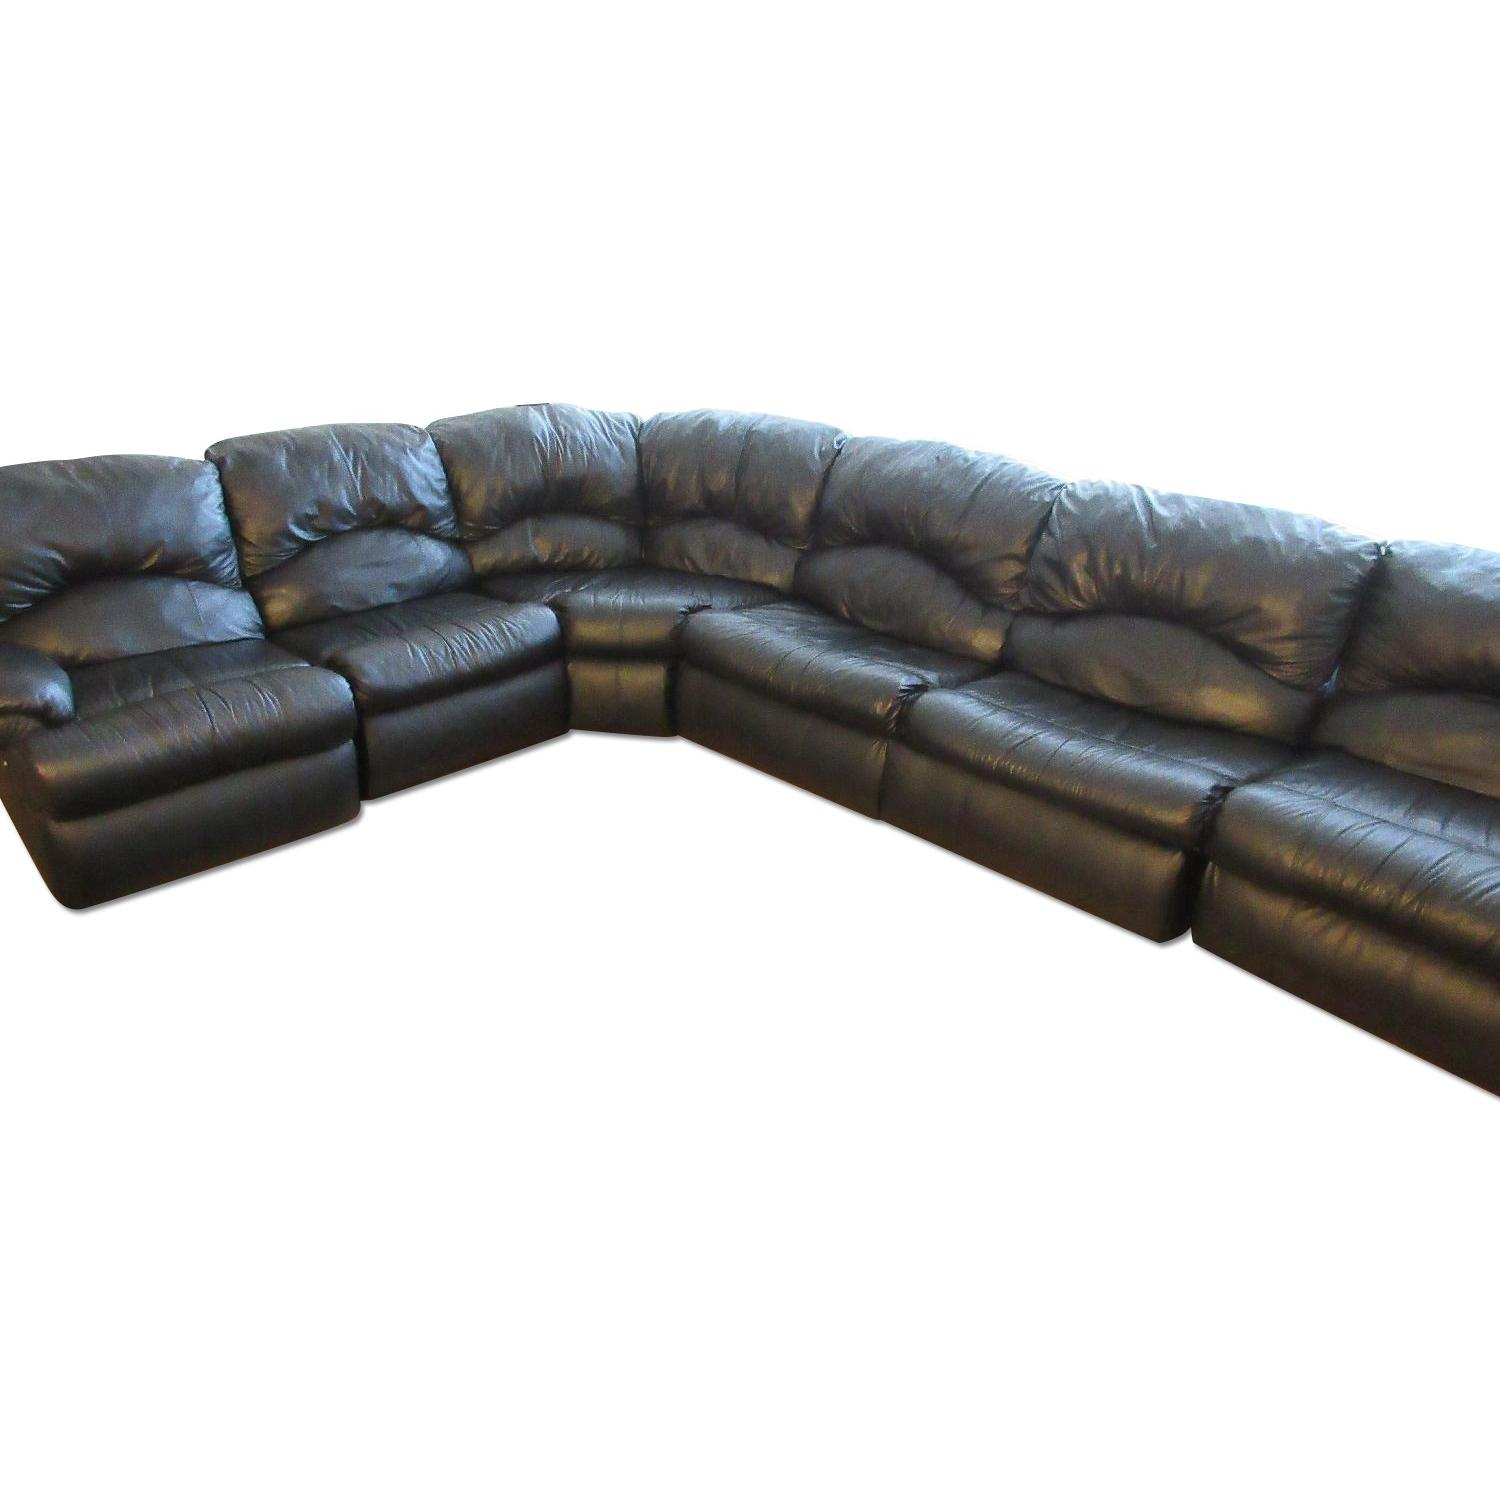 Klaussner Phoenix Sectional w/ Recliners & Fold Out Bed - image-0